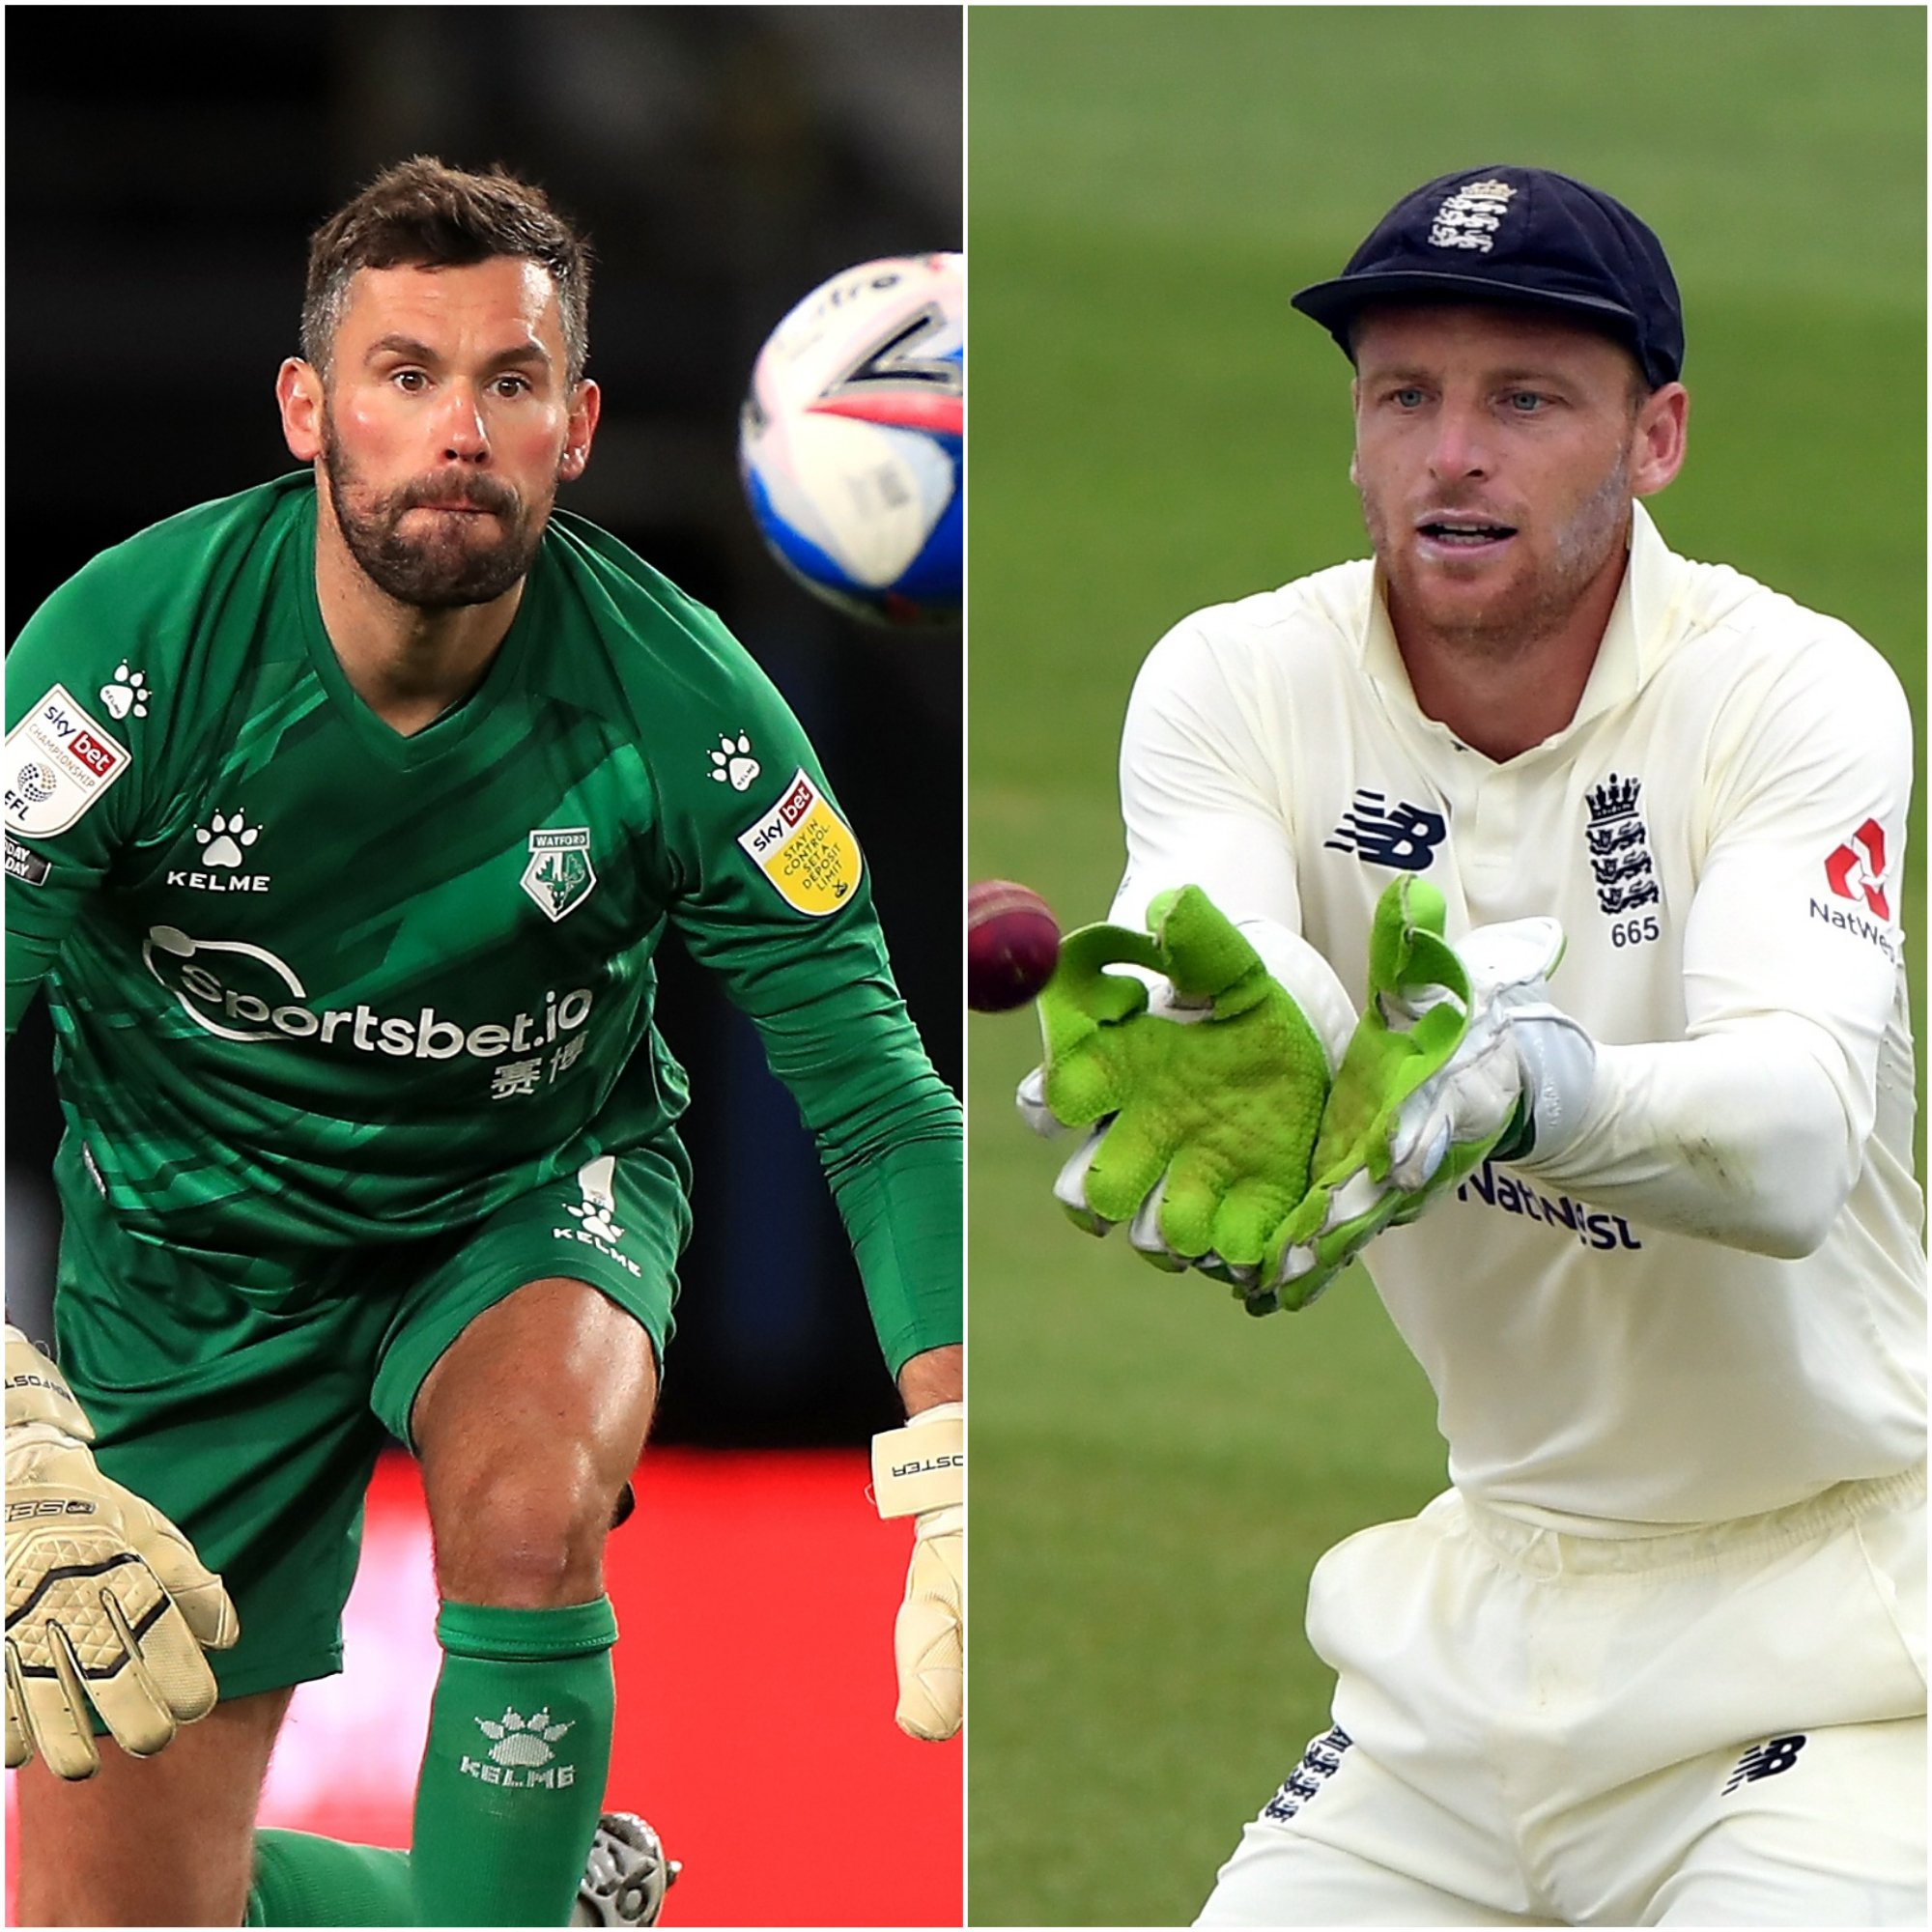 Buttler gets iconic shirt and Foster's on his bike – Tuesday's sporting social